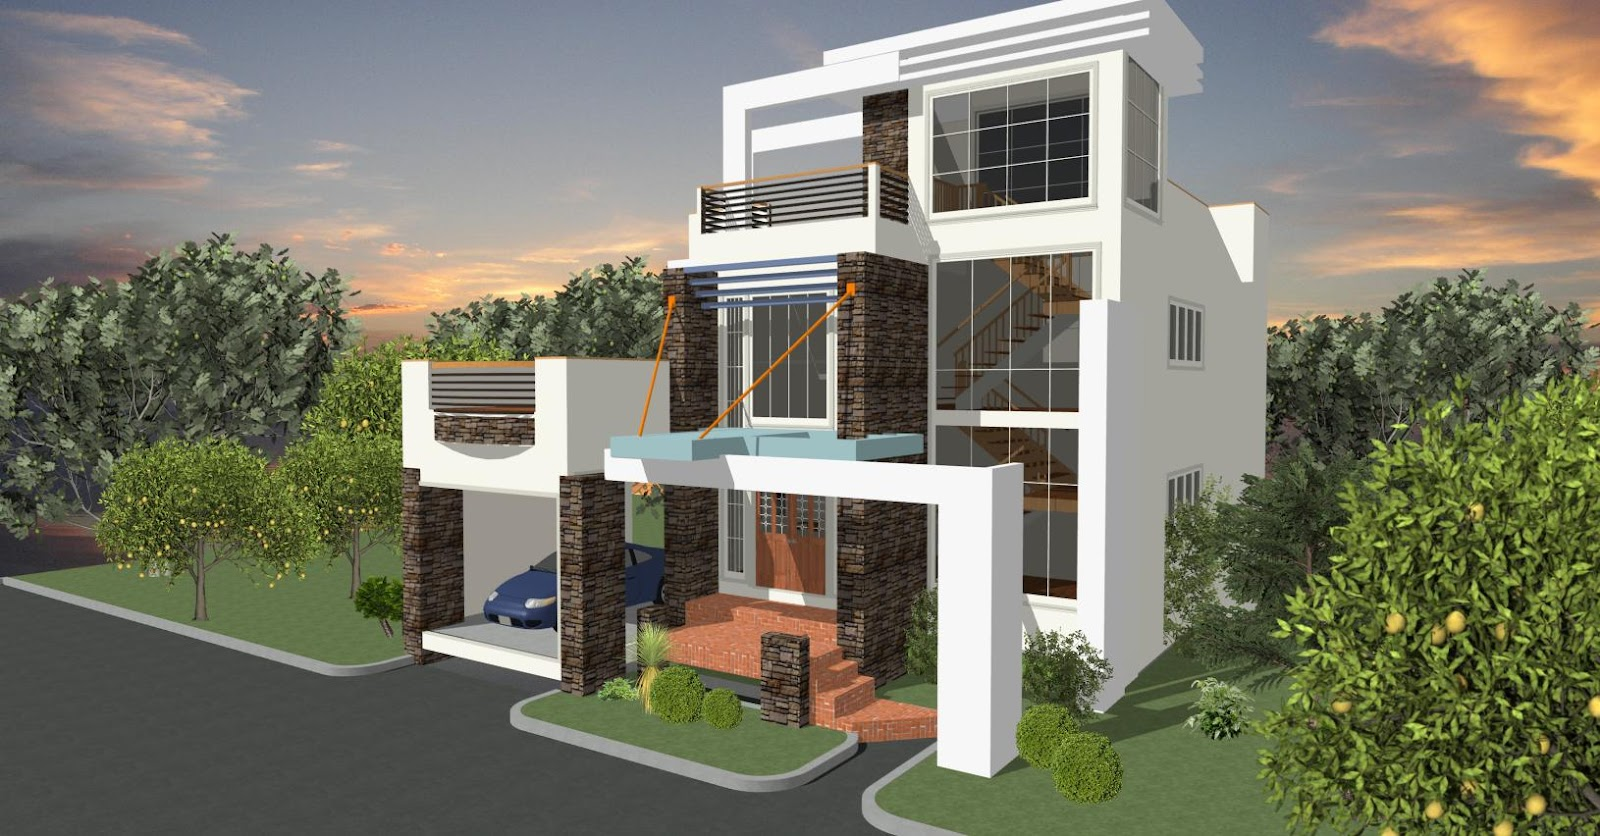 Dream home designs erecre group realty design and for Homes models and plans